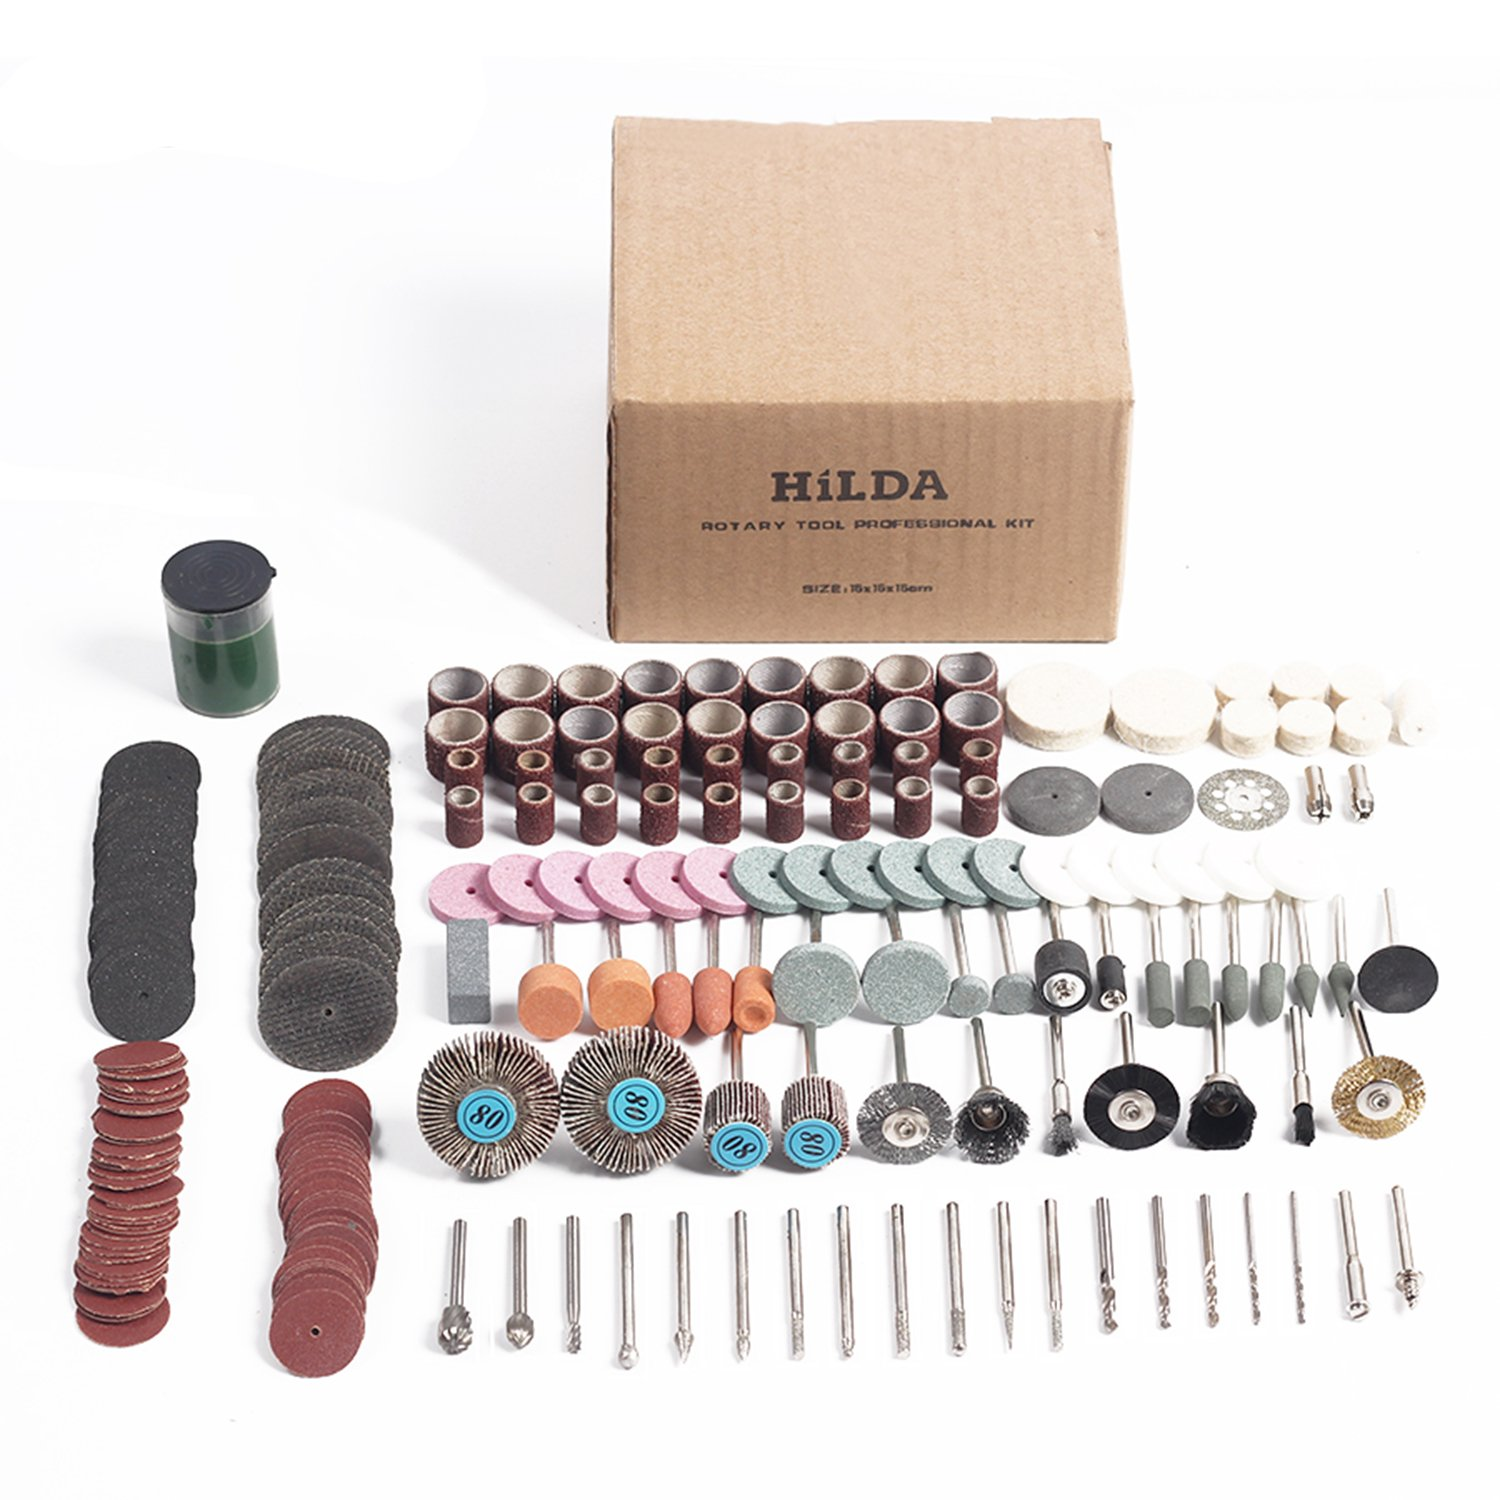 HILDA 248 pcs Rotary Tool Accessories Kit Buffing Wheels Cutting Discs with 1/8 Shank Universal fitment for Polishing Cutting Sanding and Grinding by HILDA (Image #4)